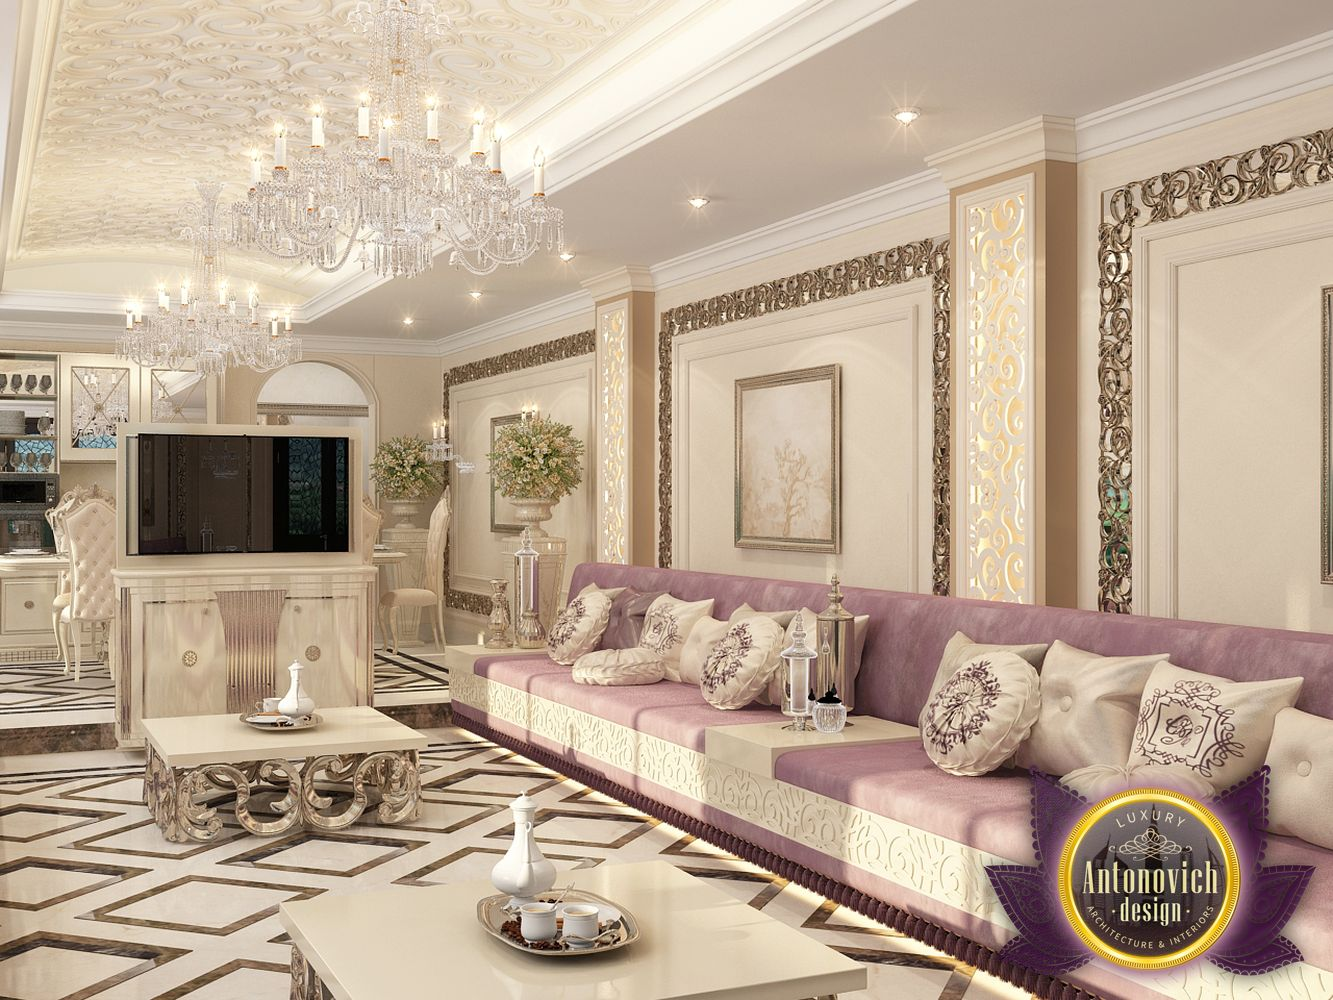 Luxurious Living Room Design Kenyadesign Living Room Design In Kenya Of Luxury